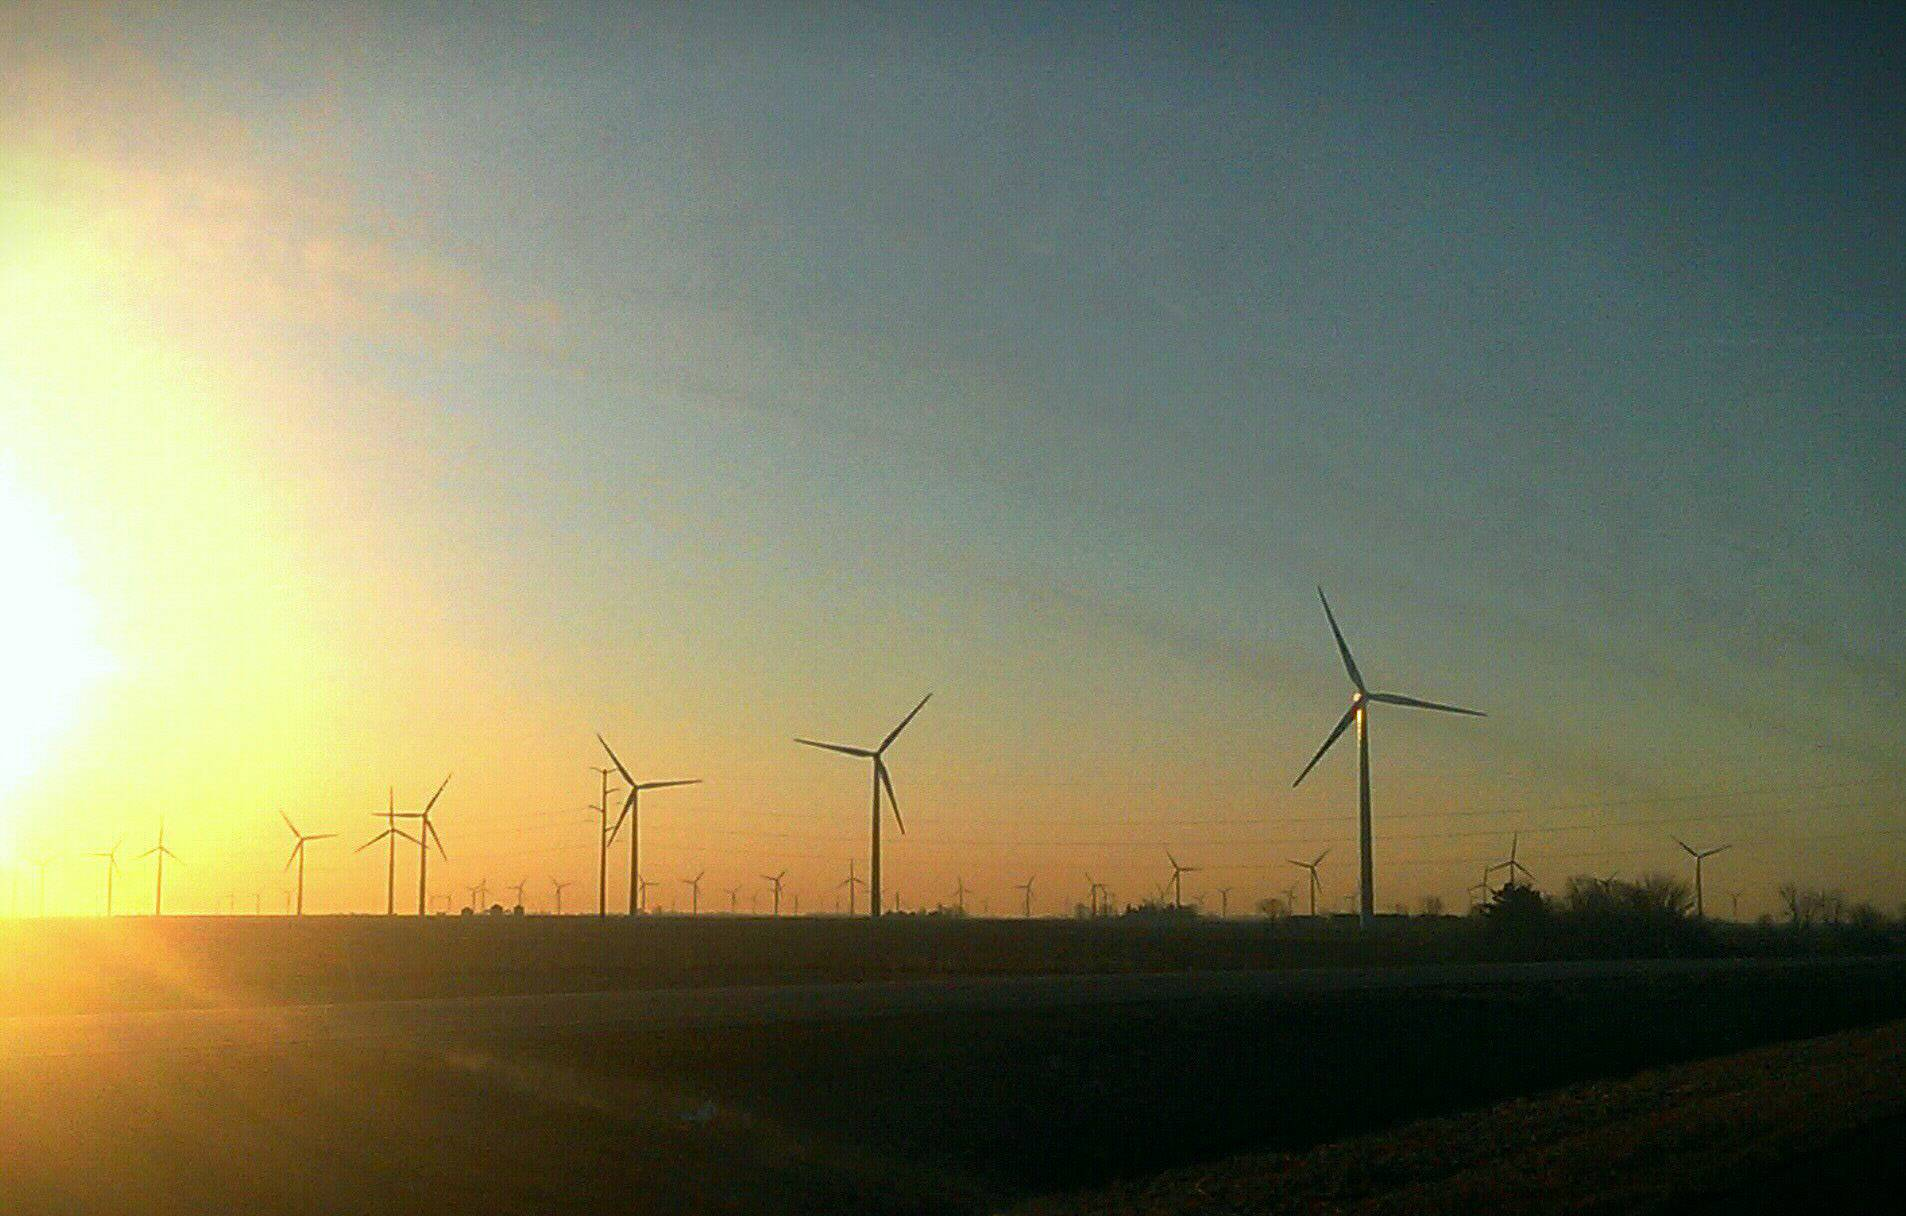 Took this photo on our way to Purdue University on a March morning.  The sun had just come over the horizon as if to announce that the renewable energy is here to stay.